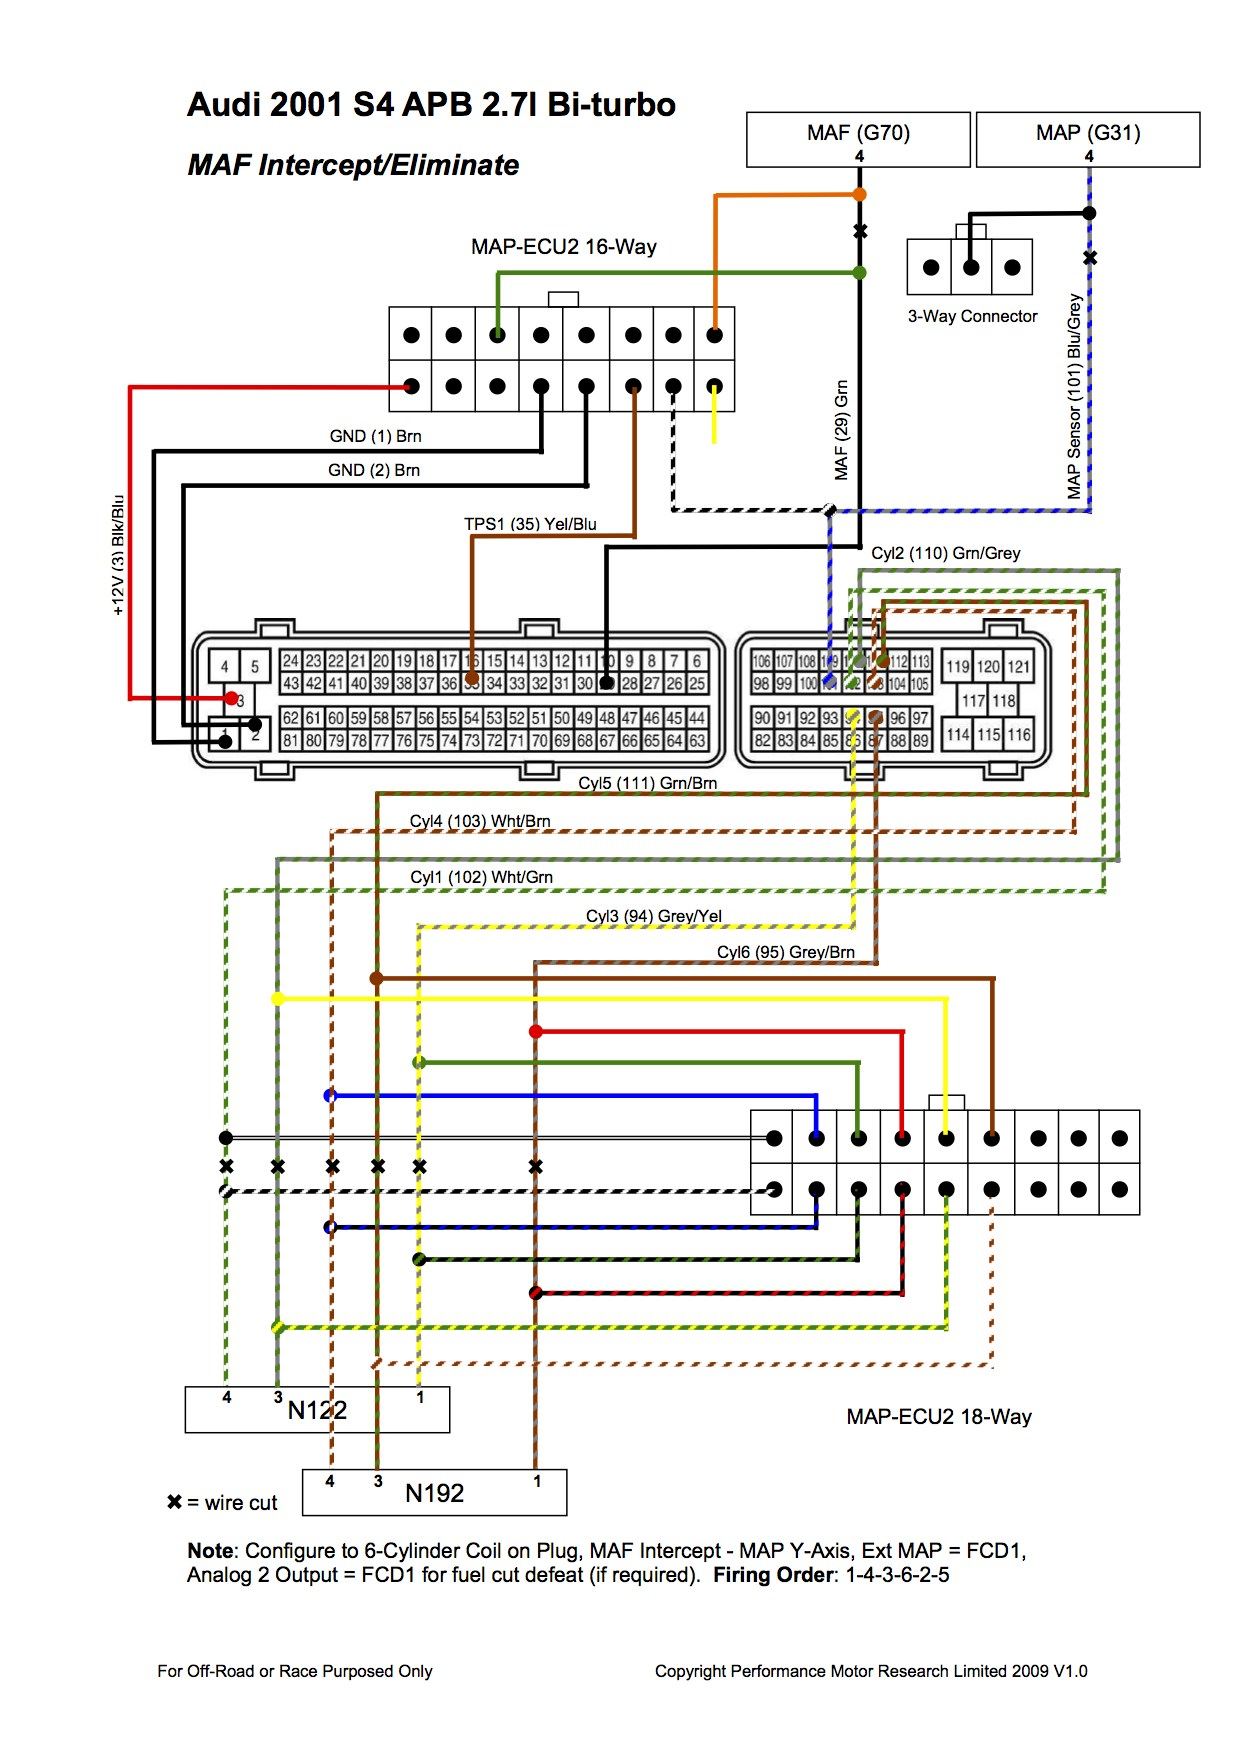 of_5439] clarion stereo wiring diagram complete car engine scheme and wiring  download diagram  otene cette itis awni oidei adit itive kapemie aesth jidig isra  mohammedshrine librar wiring 101